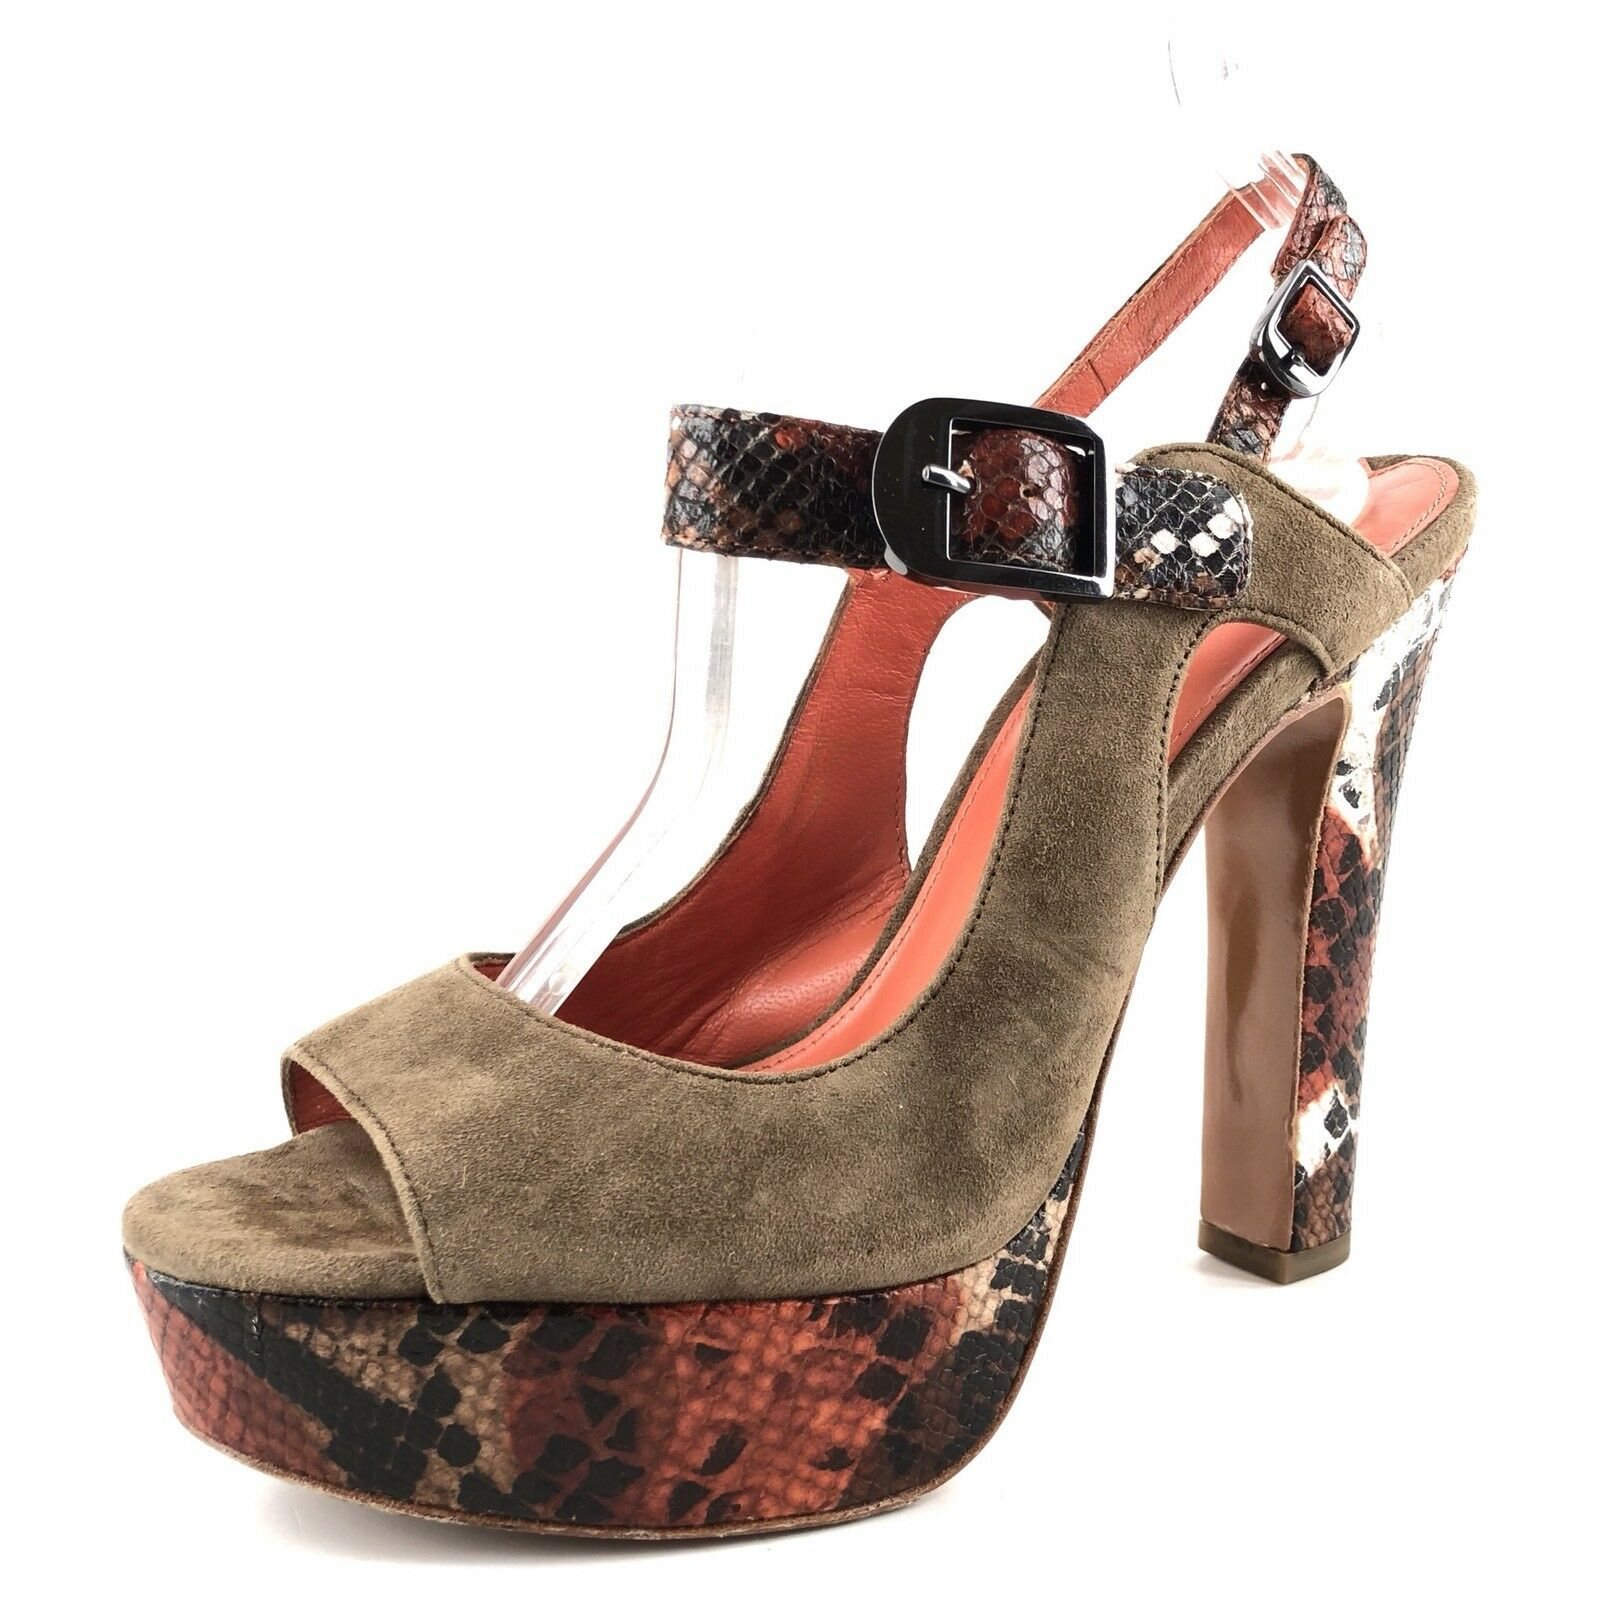 Via Spiga Brown Suede Ankle Strap Reptile Print Sandals Womens Size 8 M